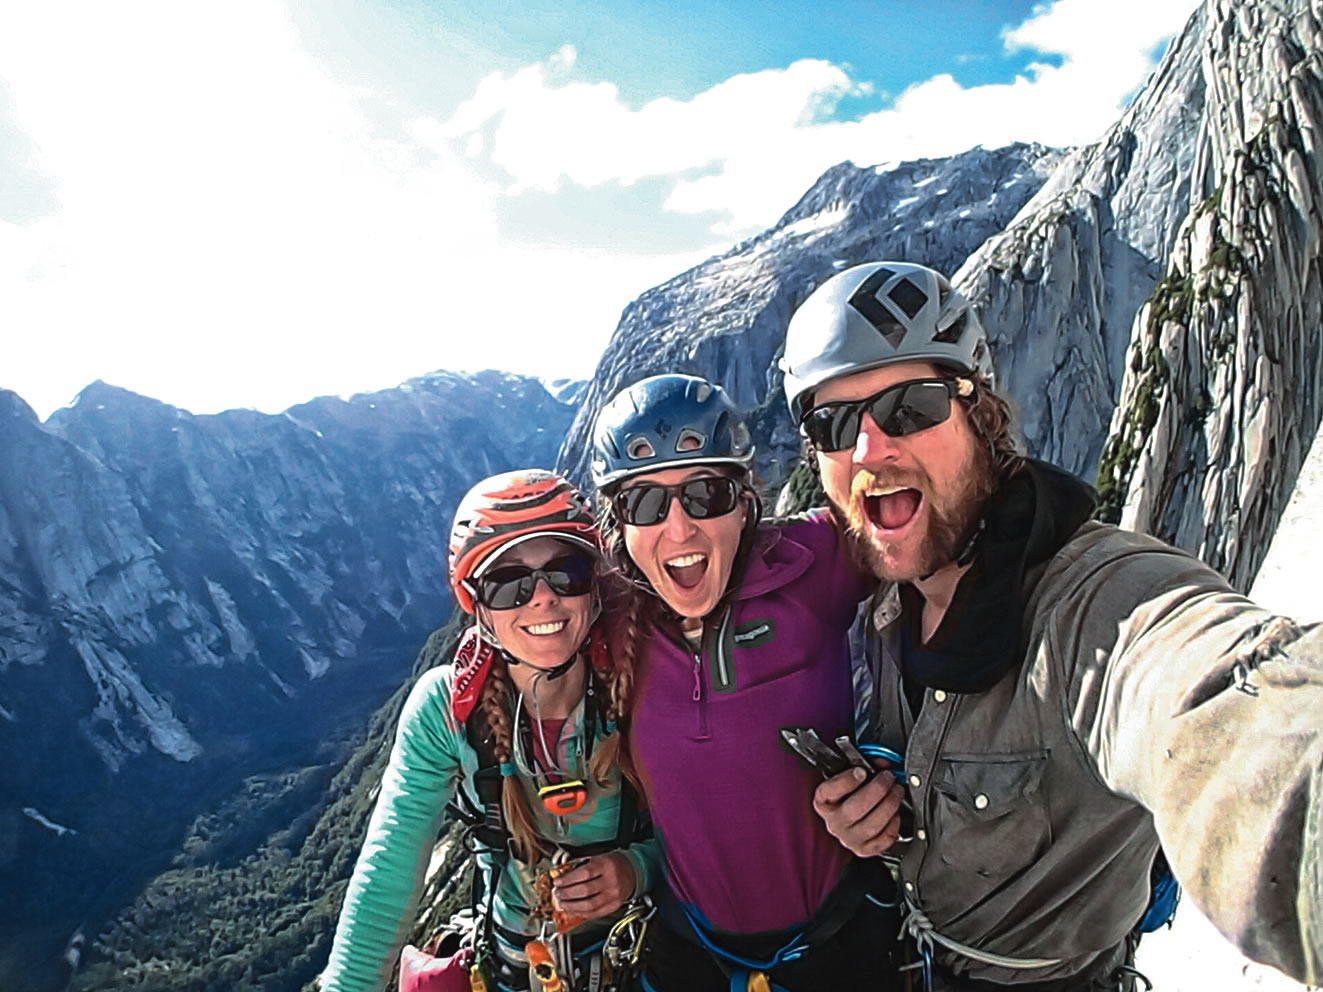 From left to right: Sauter, Althea Rogers and Niels Tietze near the top of El Hermano, named by the late Michael Ybarra. The team made the first ascent in honor of Ybarra and Gil Weis, who had dreamed of the route. [Photo] Niels Tietze